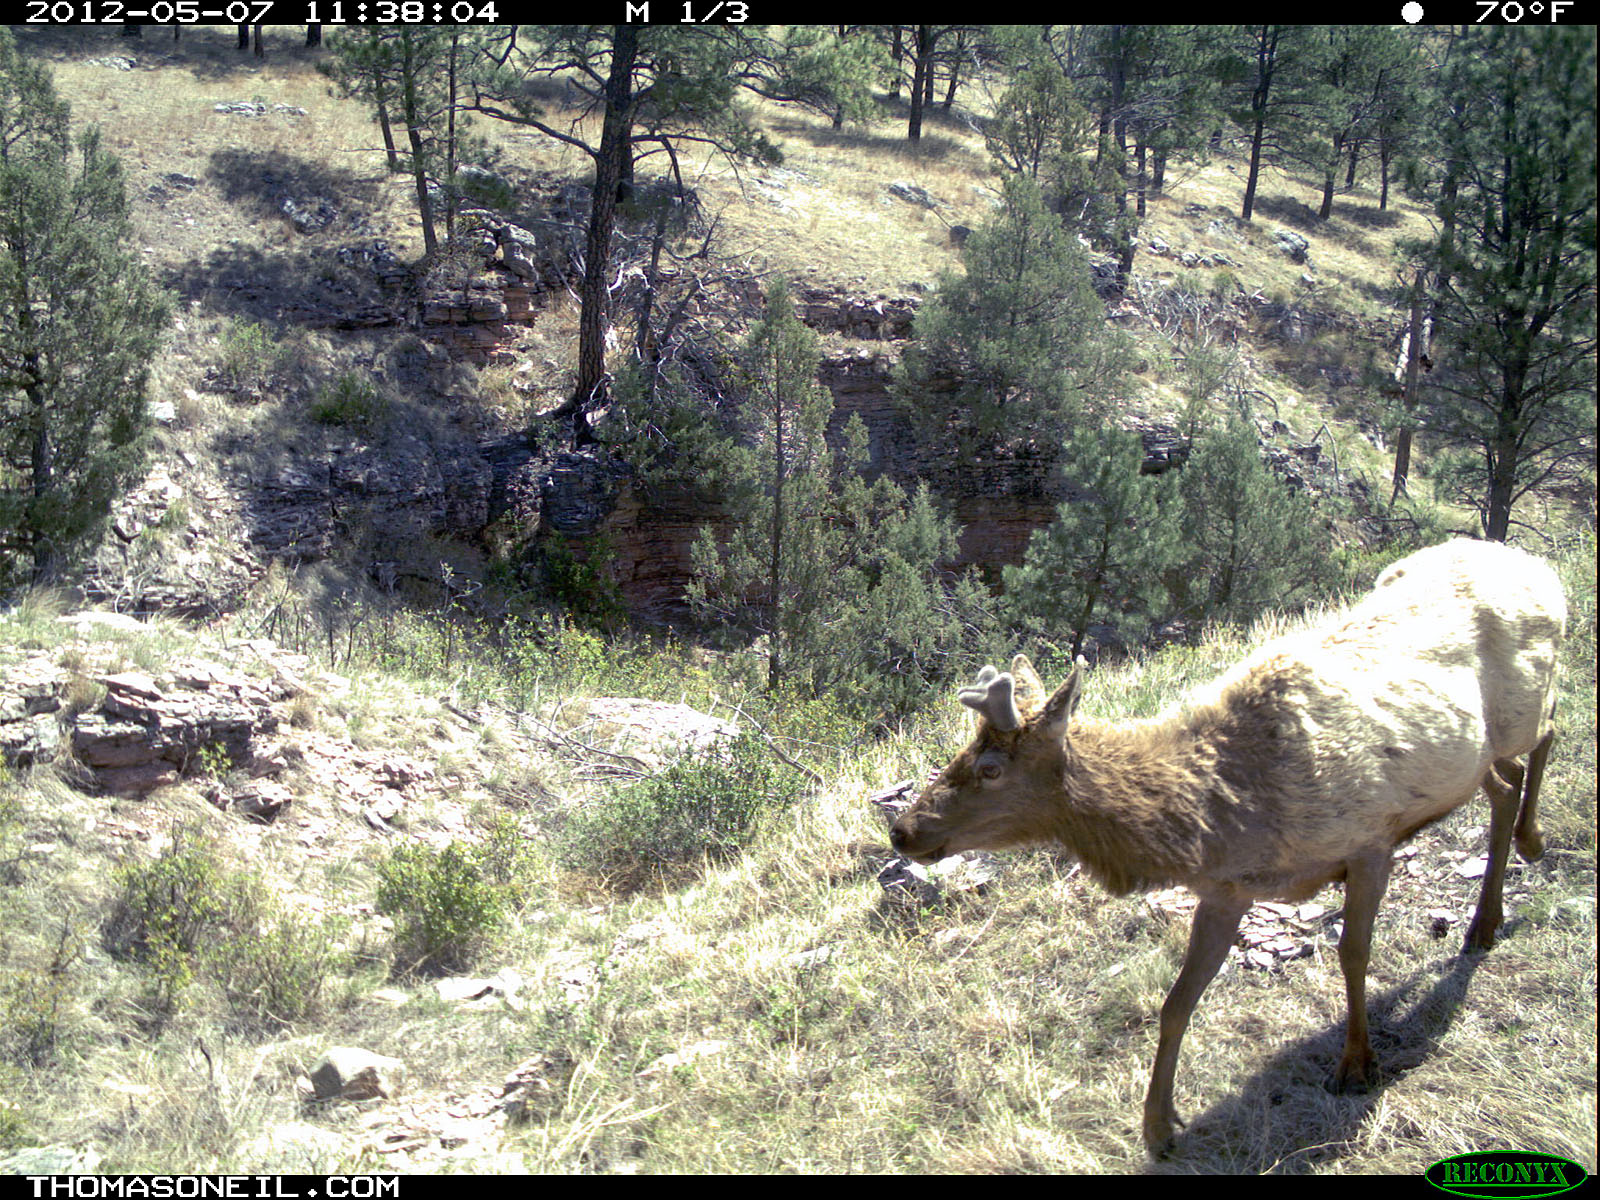 Trailcam picture of elk, Wind Cave National Park, May 7.